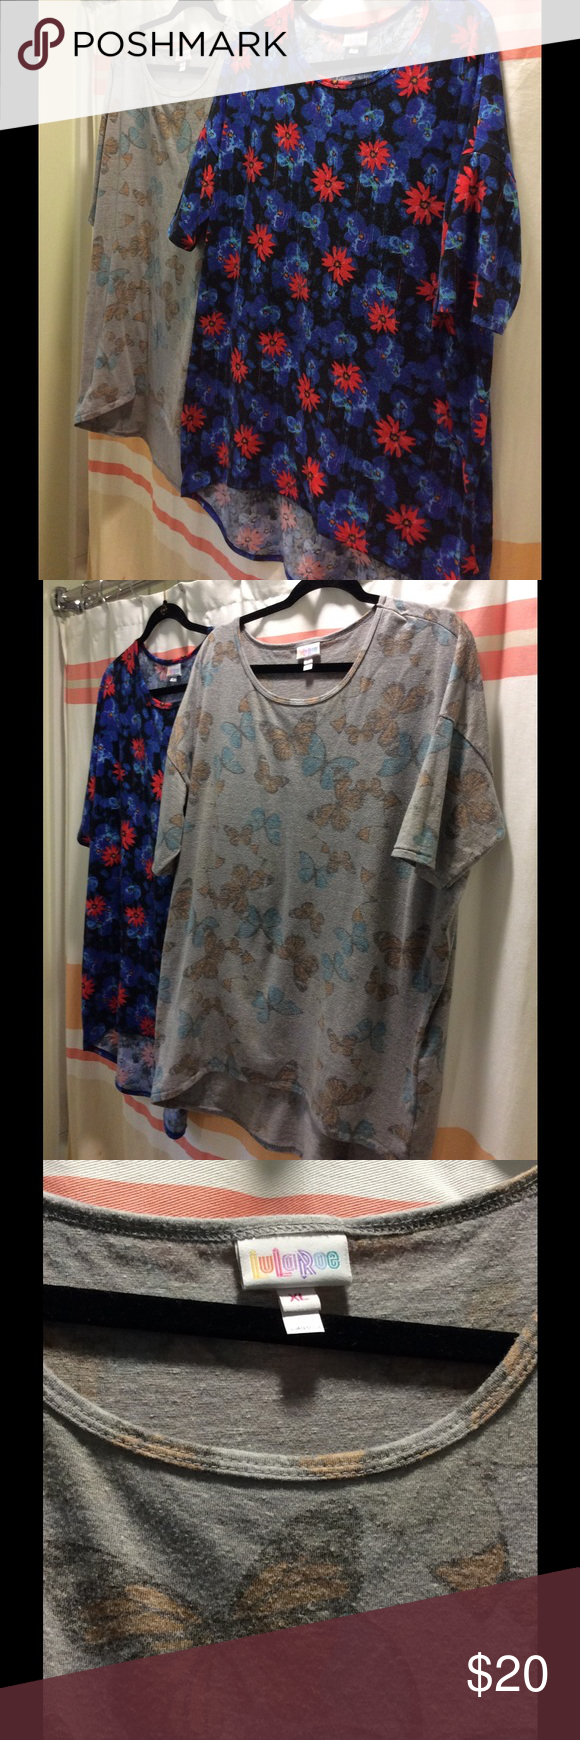 LuLaRoe Irma x 2 2 Irmas for the price of 1! Well loved Irmas, used condition. Thee is some pilling (see photos). They have been washed according to LLR instructions and worn a number of times. Still super soft and comfy! Floral is size L, Butterflies XL. LuLaRoe Tops Tunics